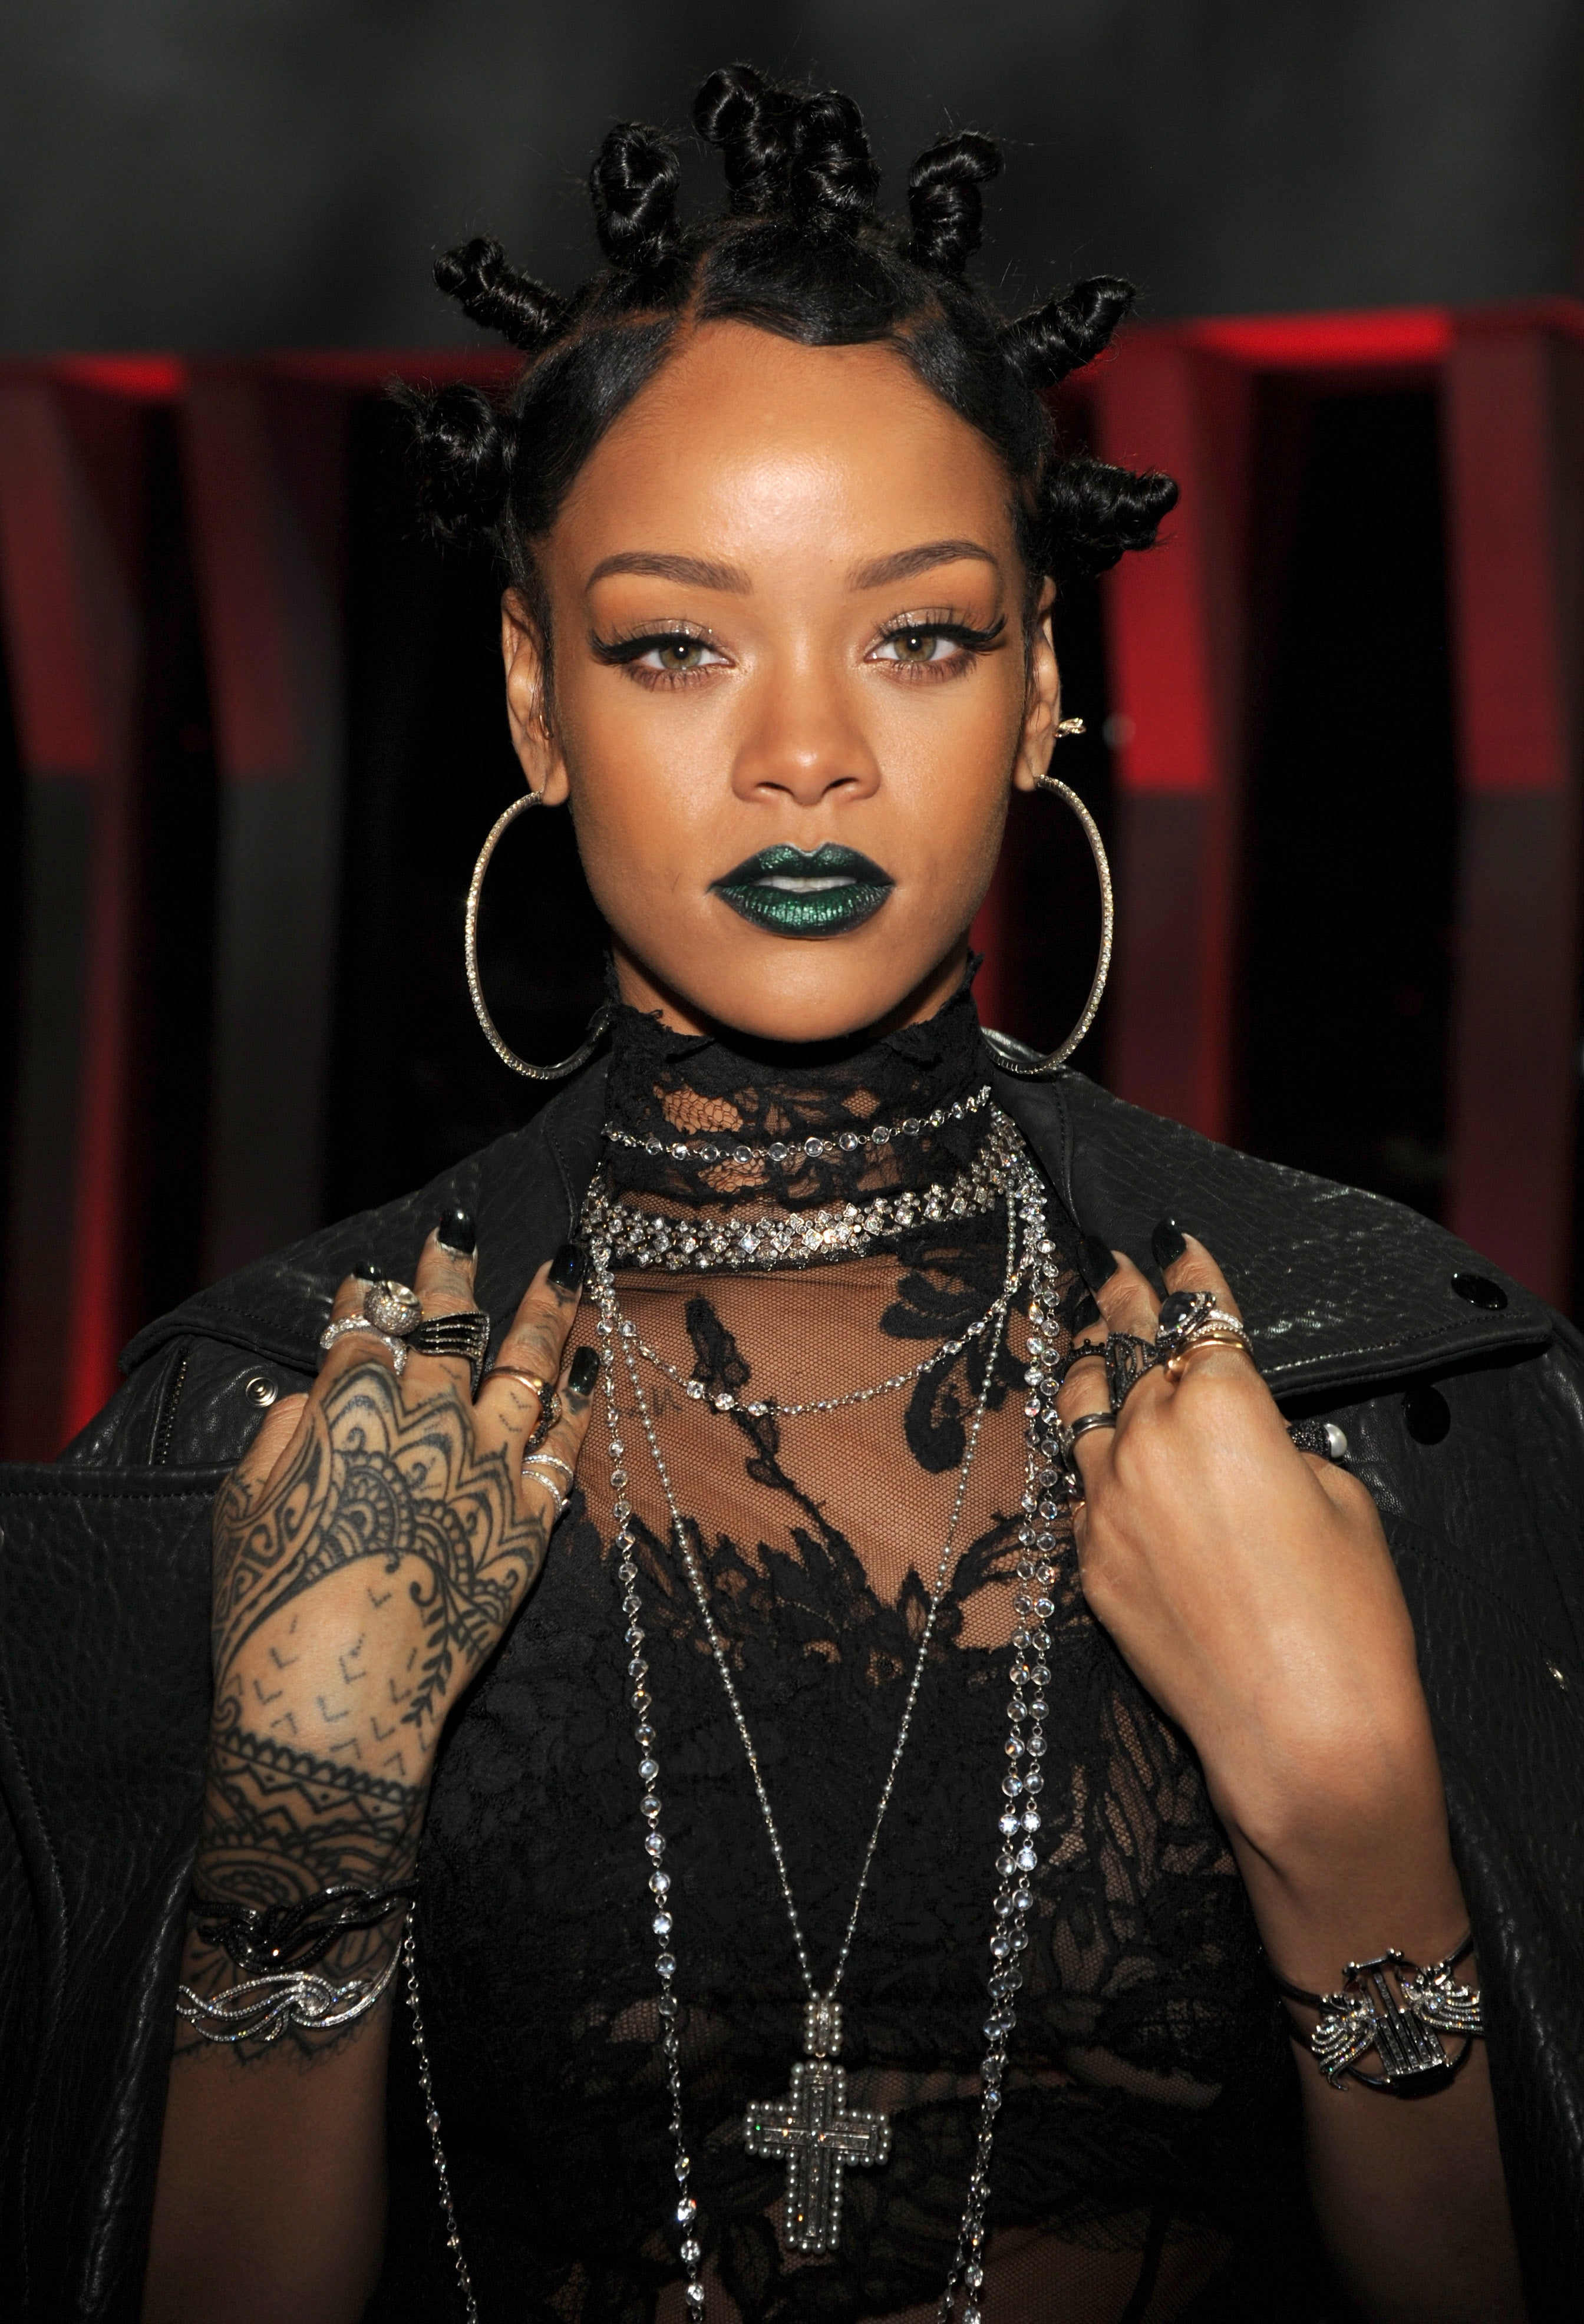 These Black Bantu Knot Rocking Celebrities Are Showing